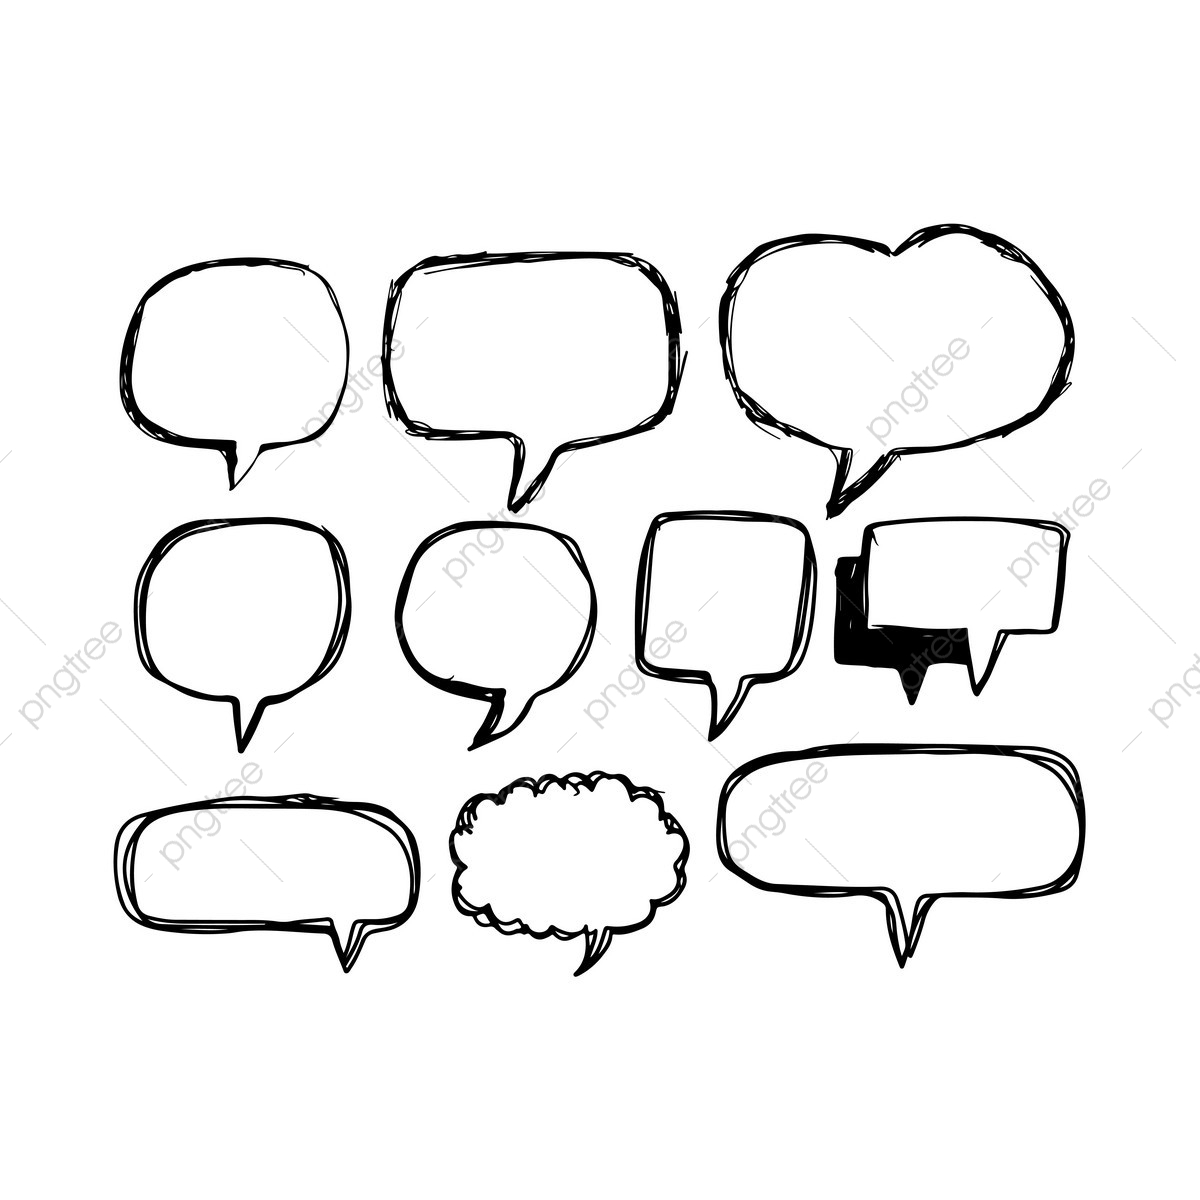 clip art royalty free library Speech icon hand drawn. Vector bubble communication